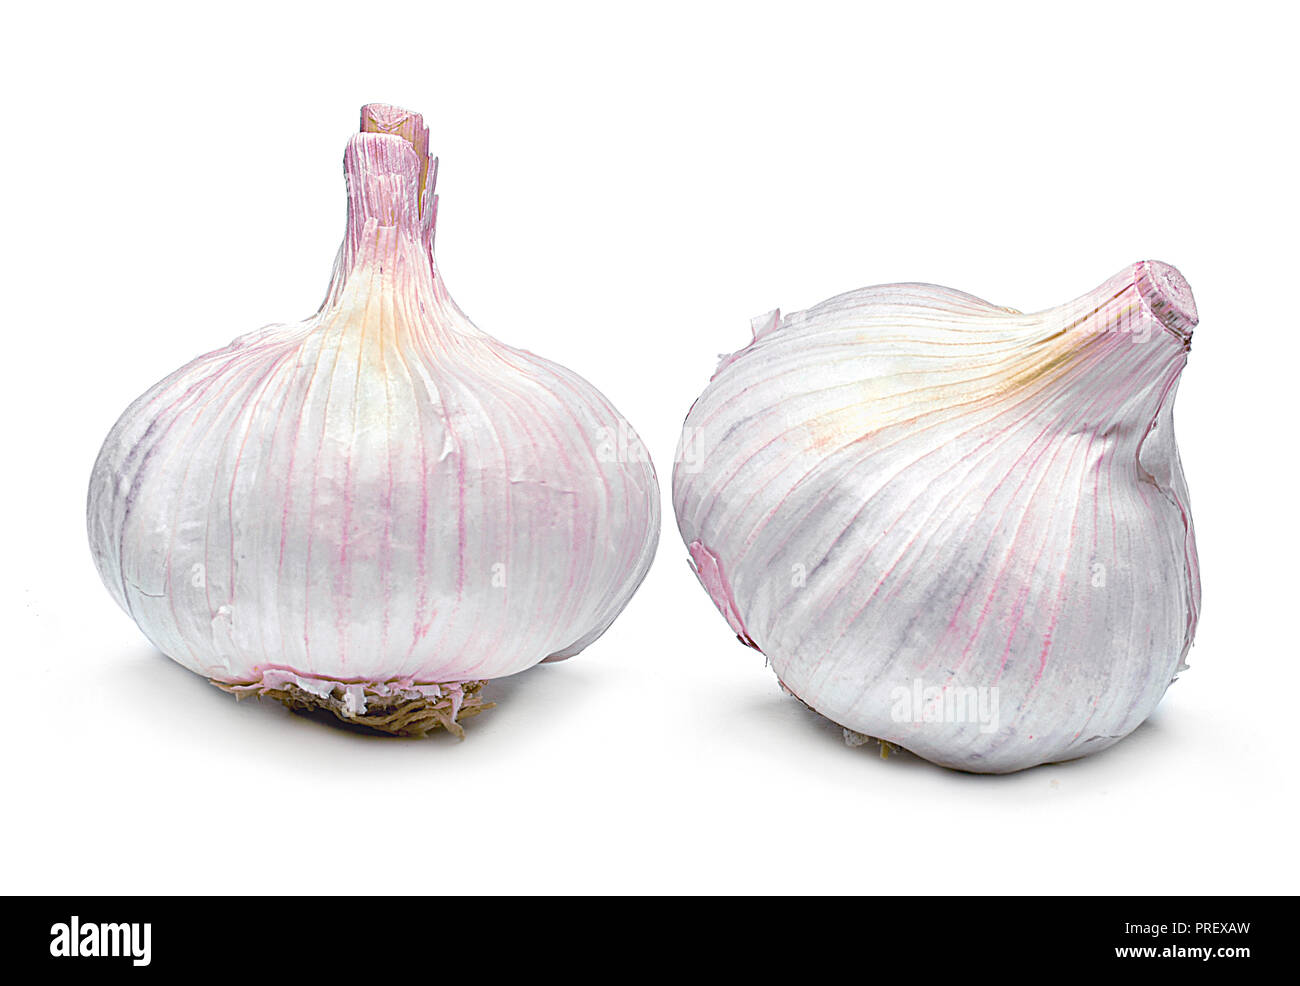 Beautiful fresh garlic. Group of objects or cooking ingredients, isolated on white background. Closeup shot, top view. - Stock Image